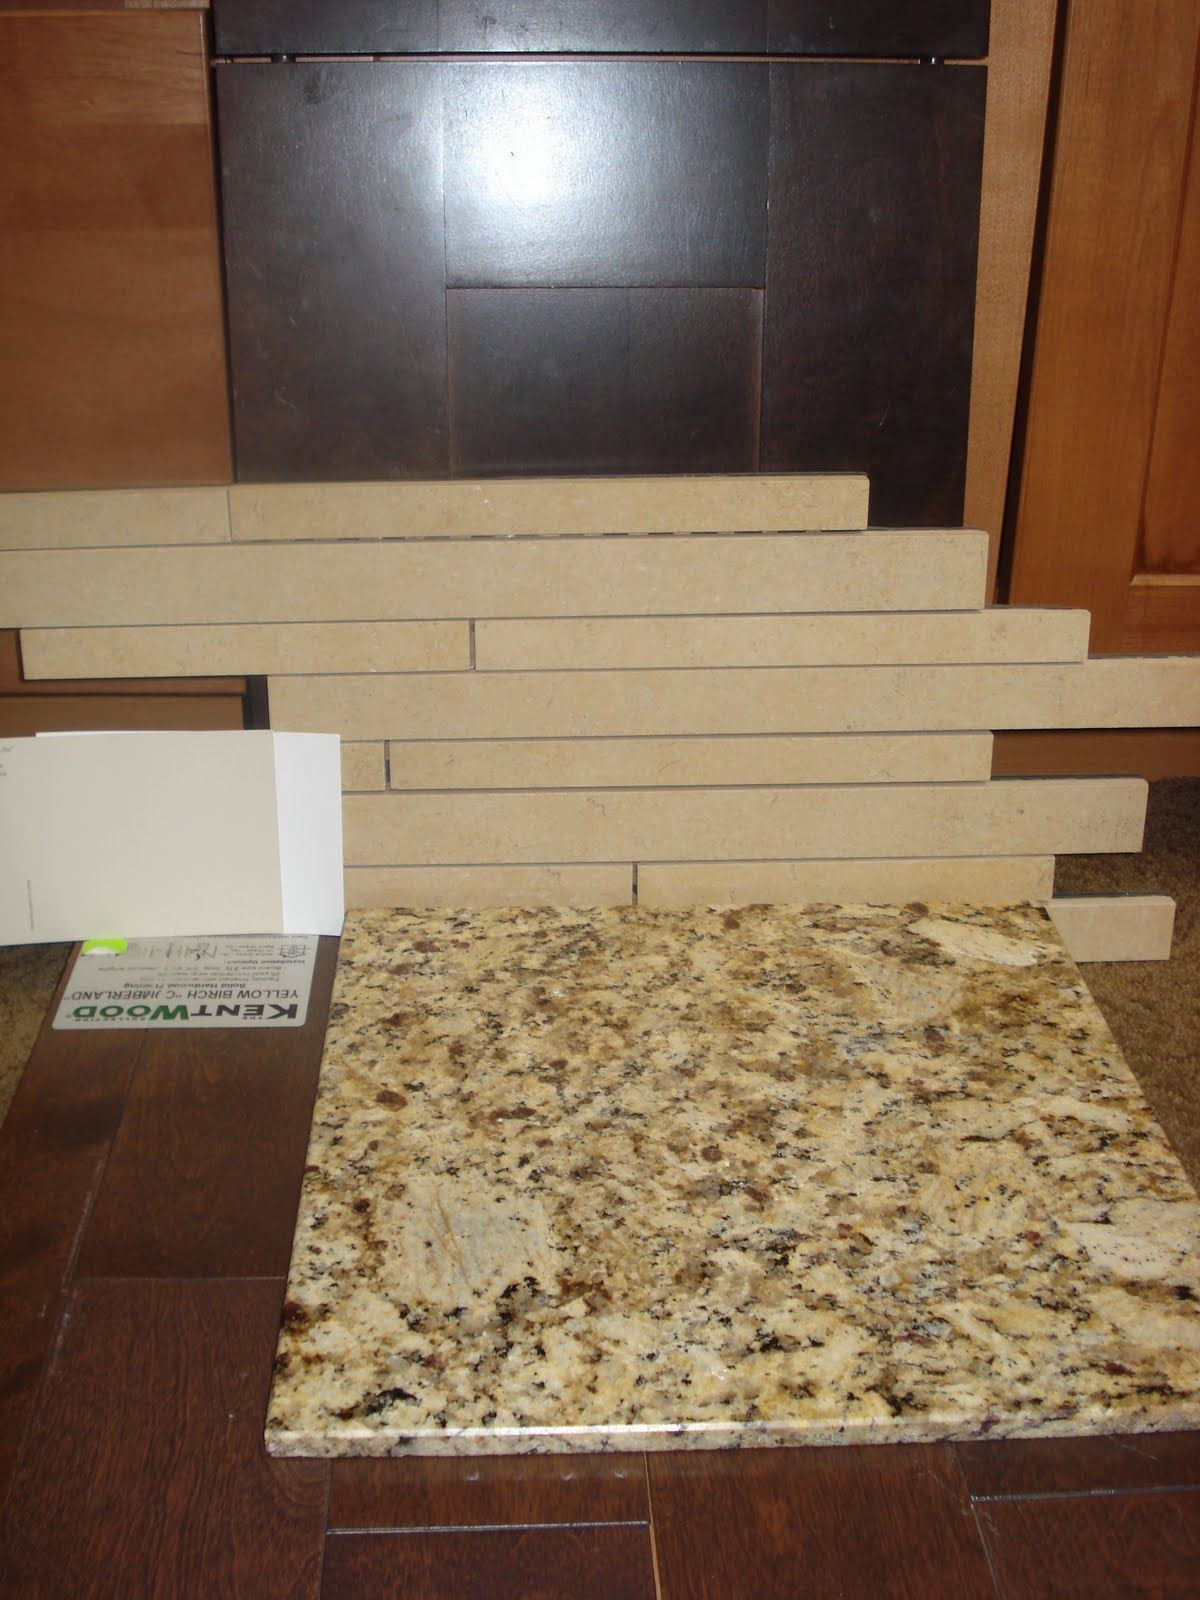 What Color Granite Goes With White Subway Tile Backsplash Subway Tile For Backsplash Instead